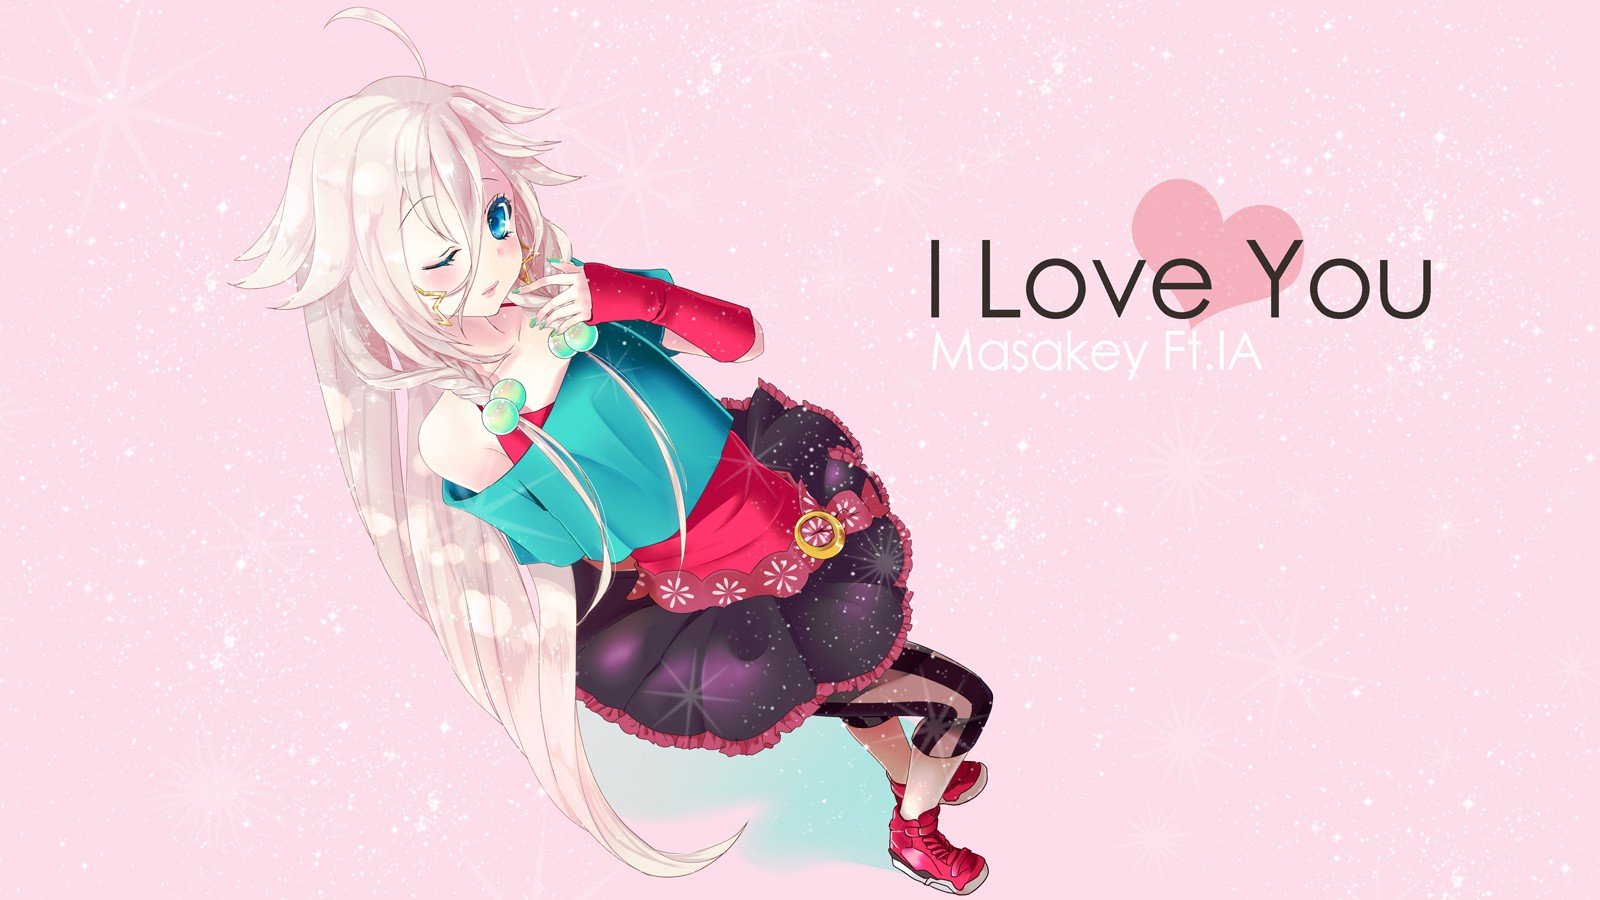 I Love You Wallpaper For Girlfriend : I Love You ~ HD Wallpapers